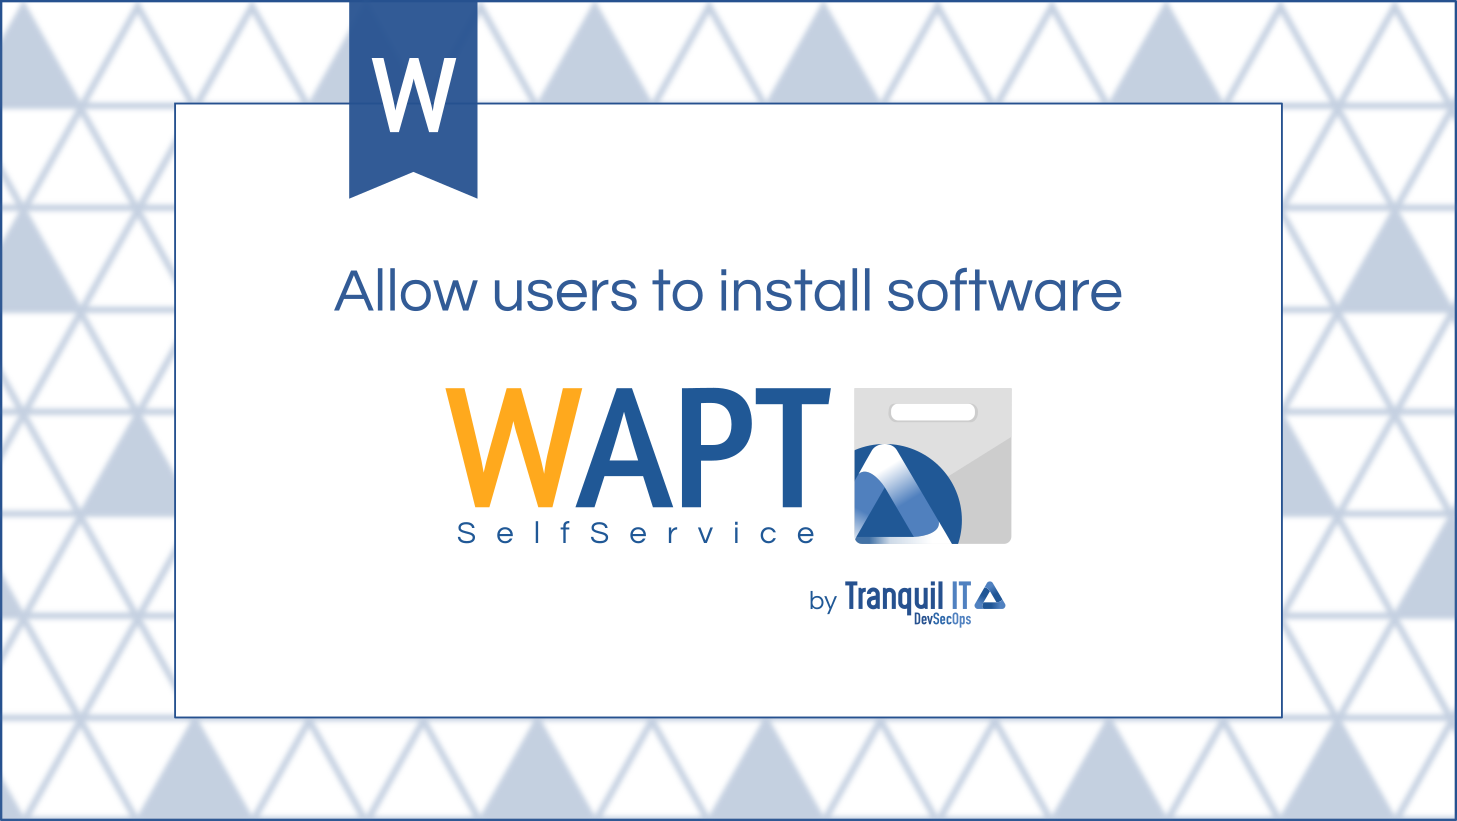 WAPT Self Service: Allow users to install software